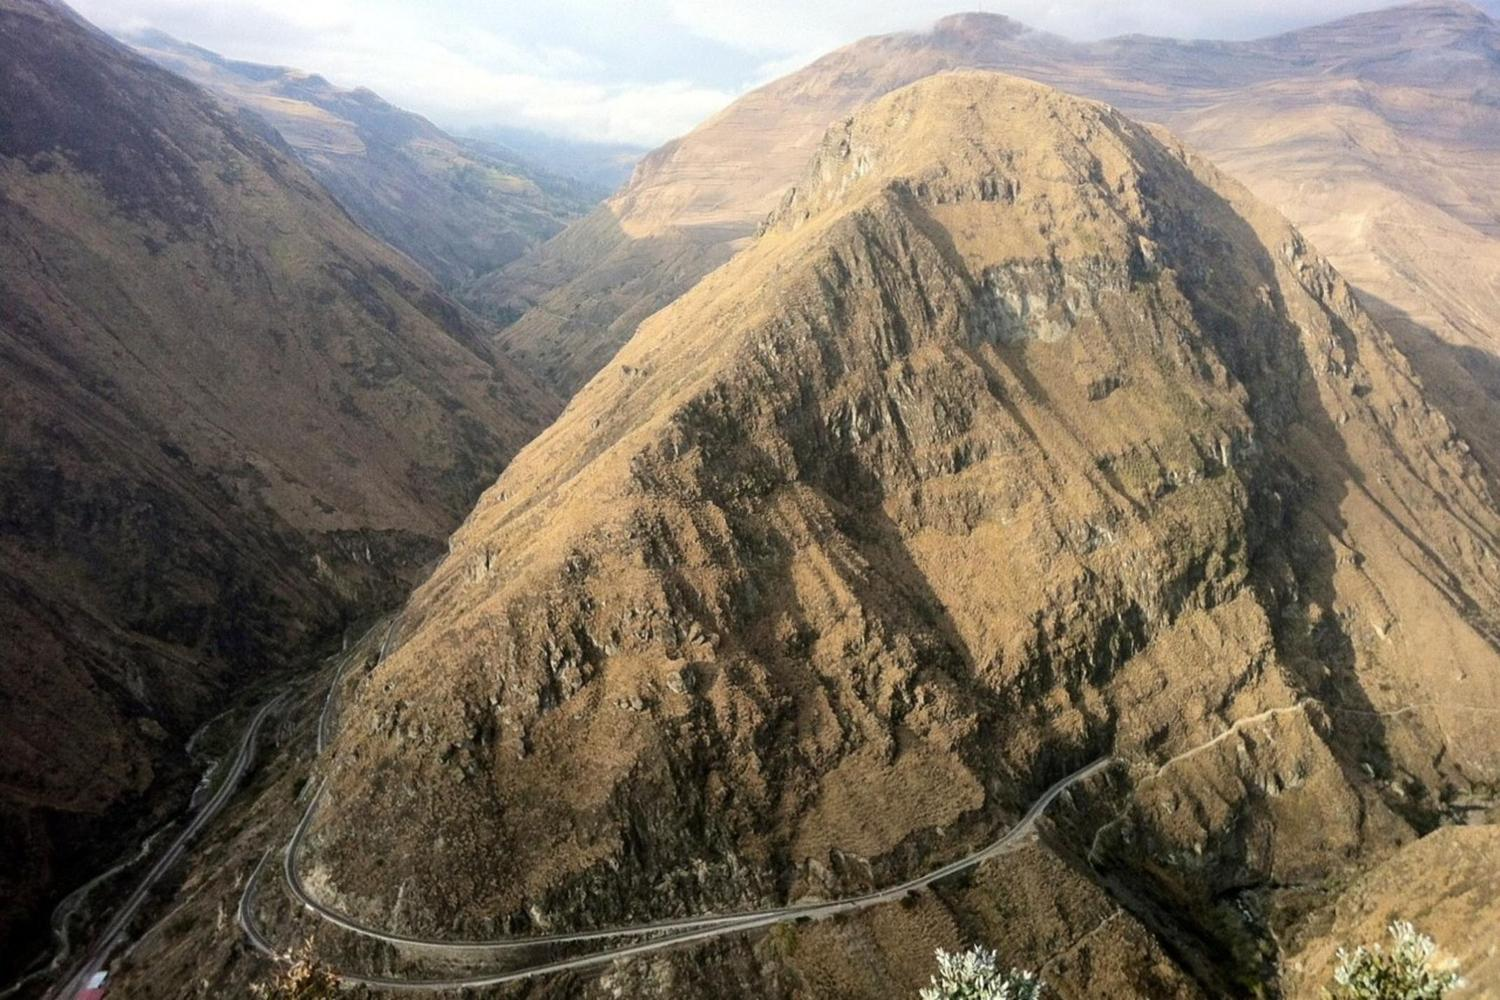 The Devil's Nose section of the railway between Alausi and Sibambe in Ecuador